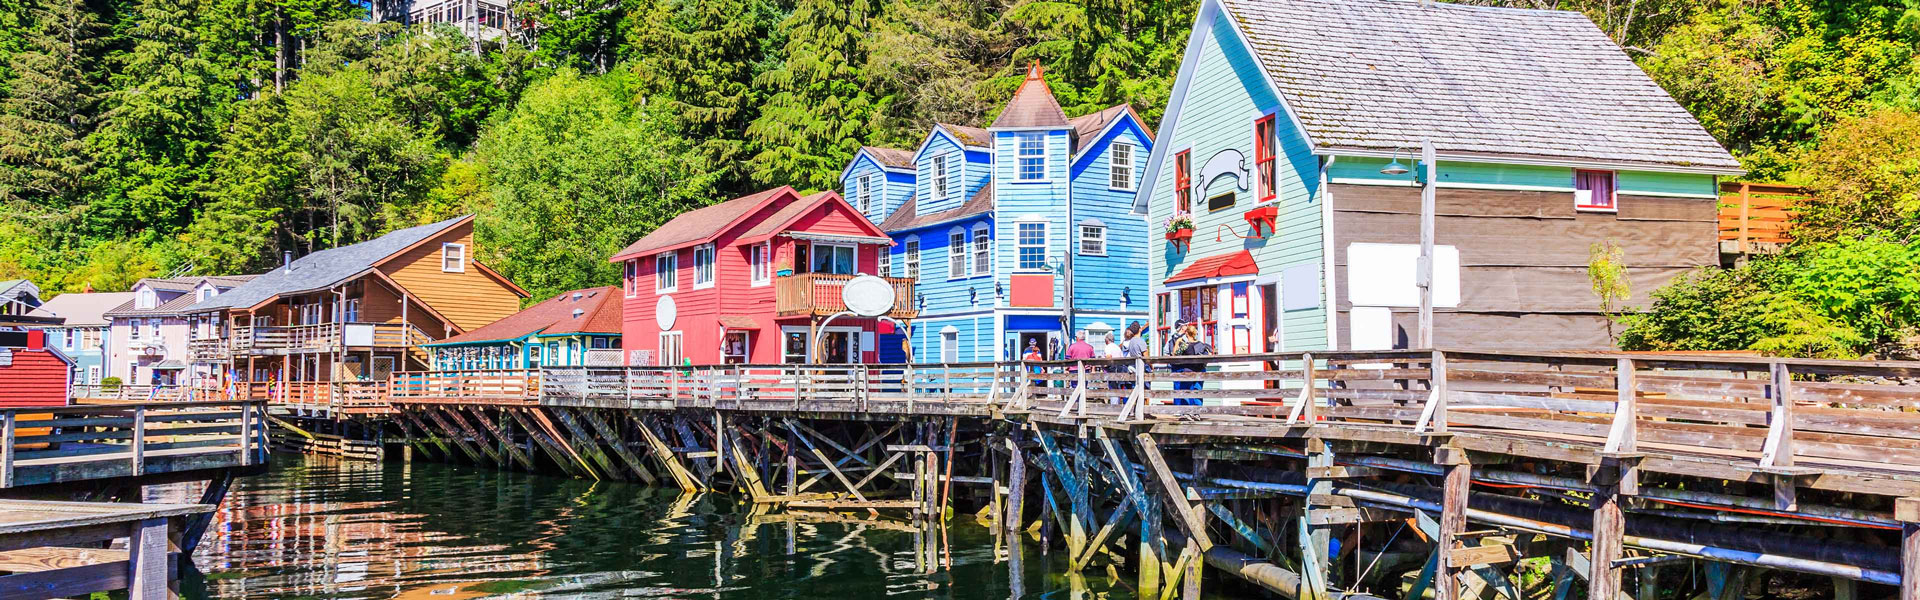 Ketchikan | Ketchikan Alaska Shore Excursions Tours